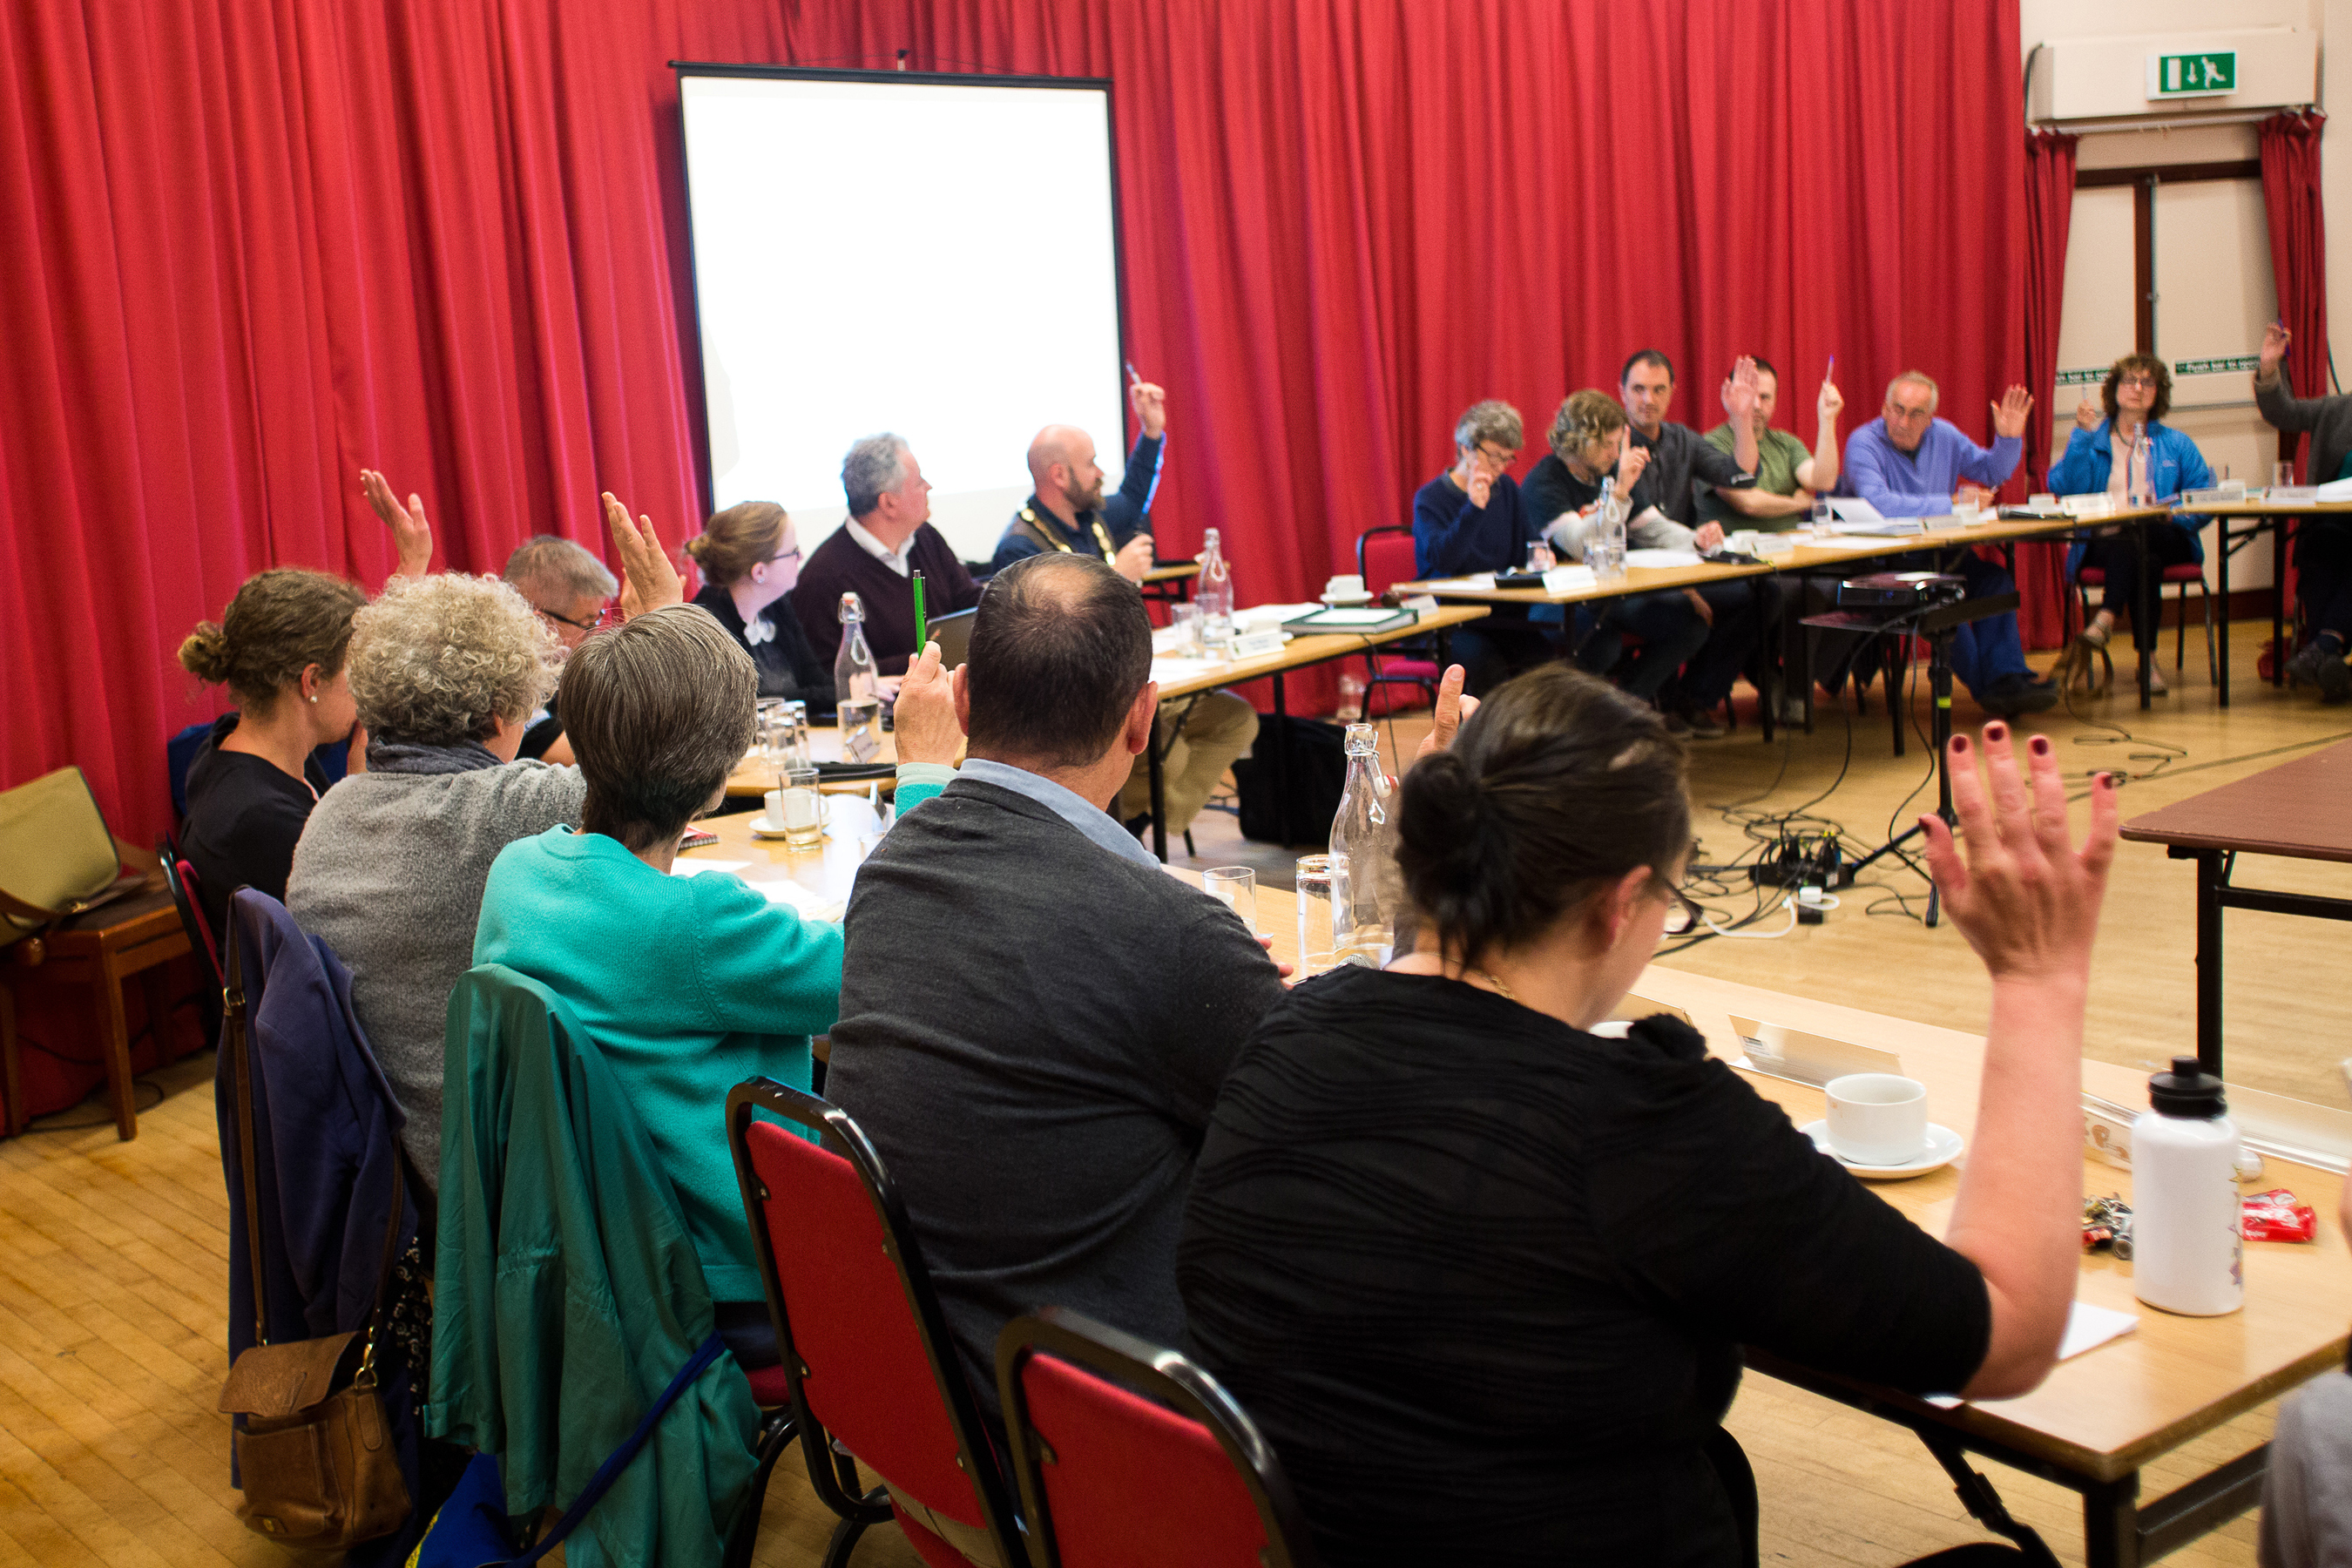 New committees and council meetings at Frome town council ...